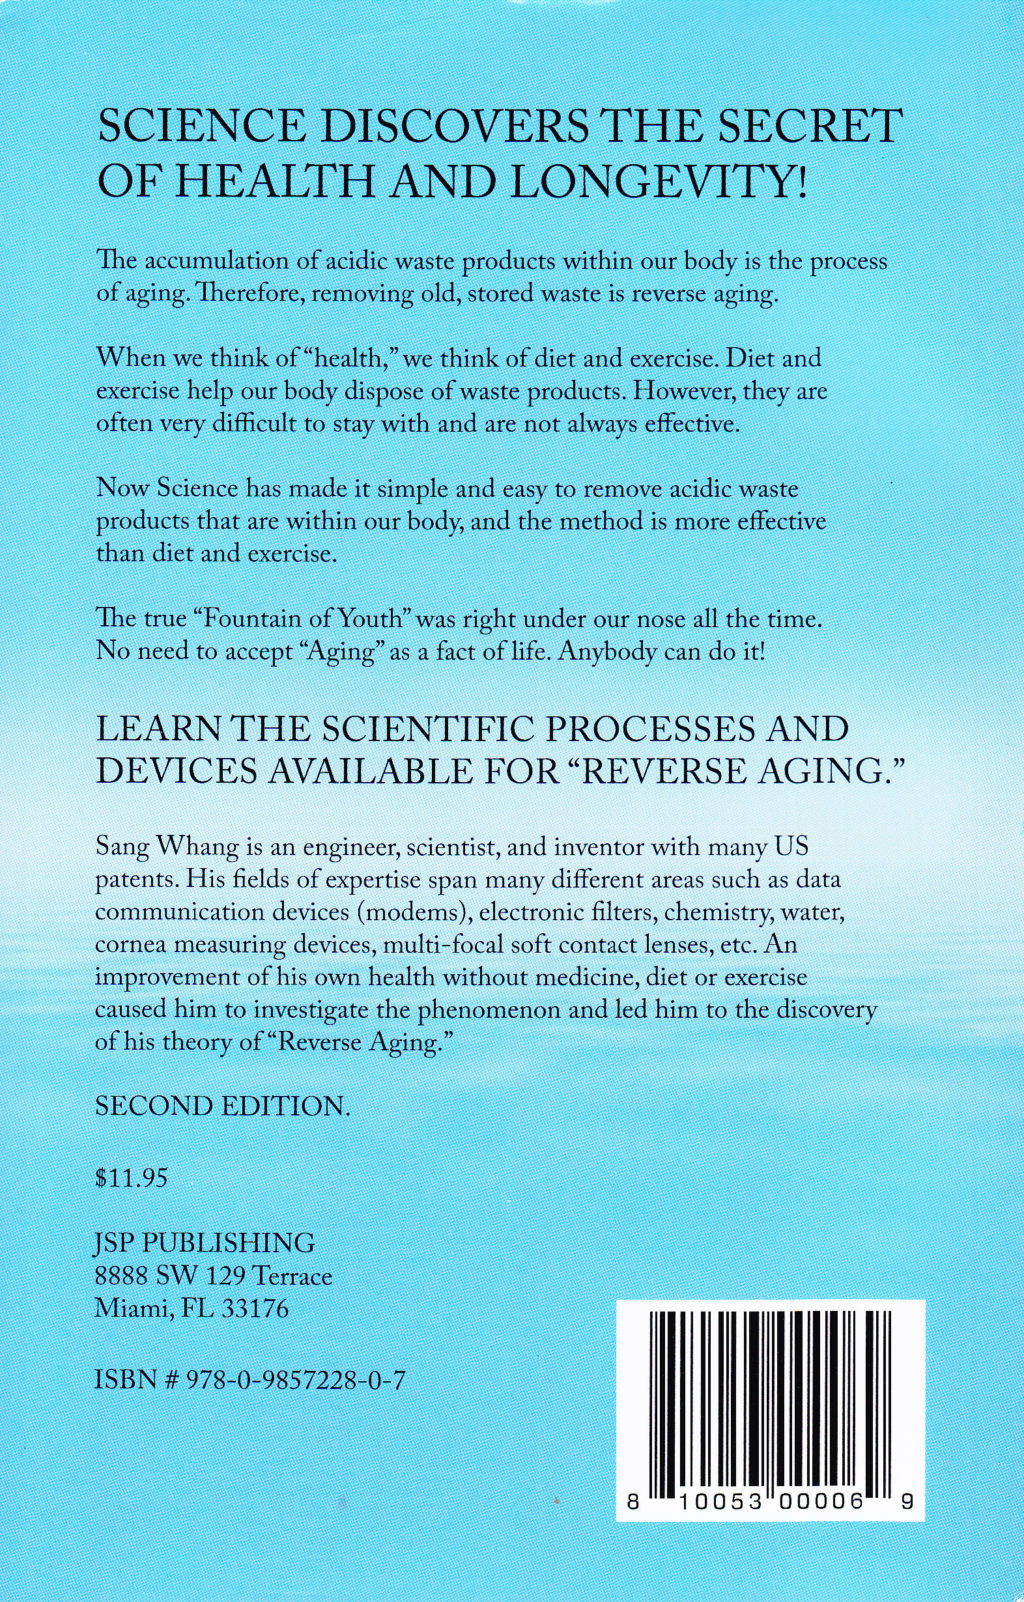 Reverse Aging by Sang Whang (back cover)